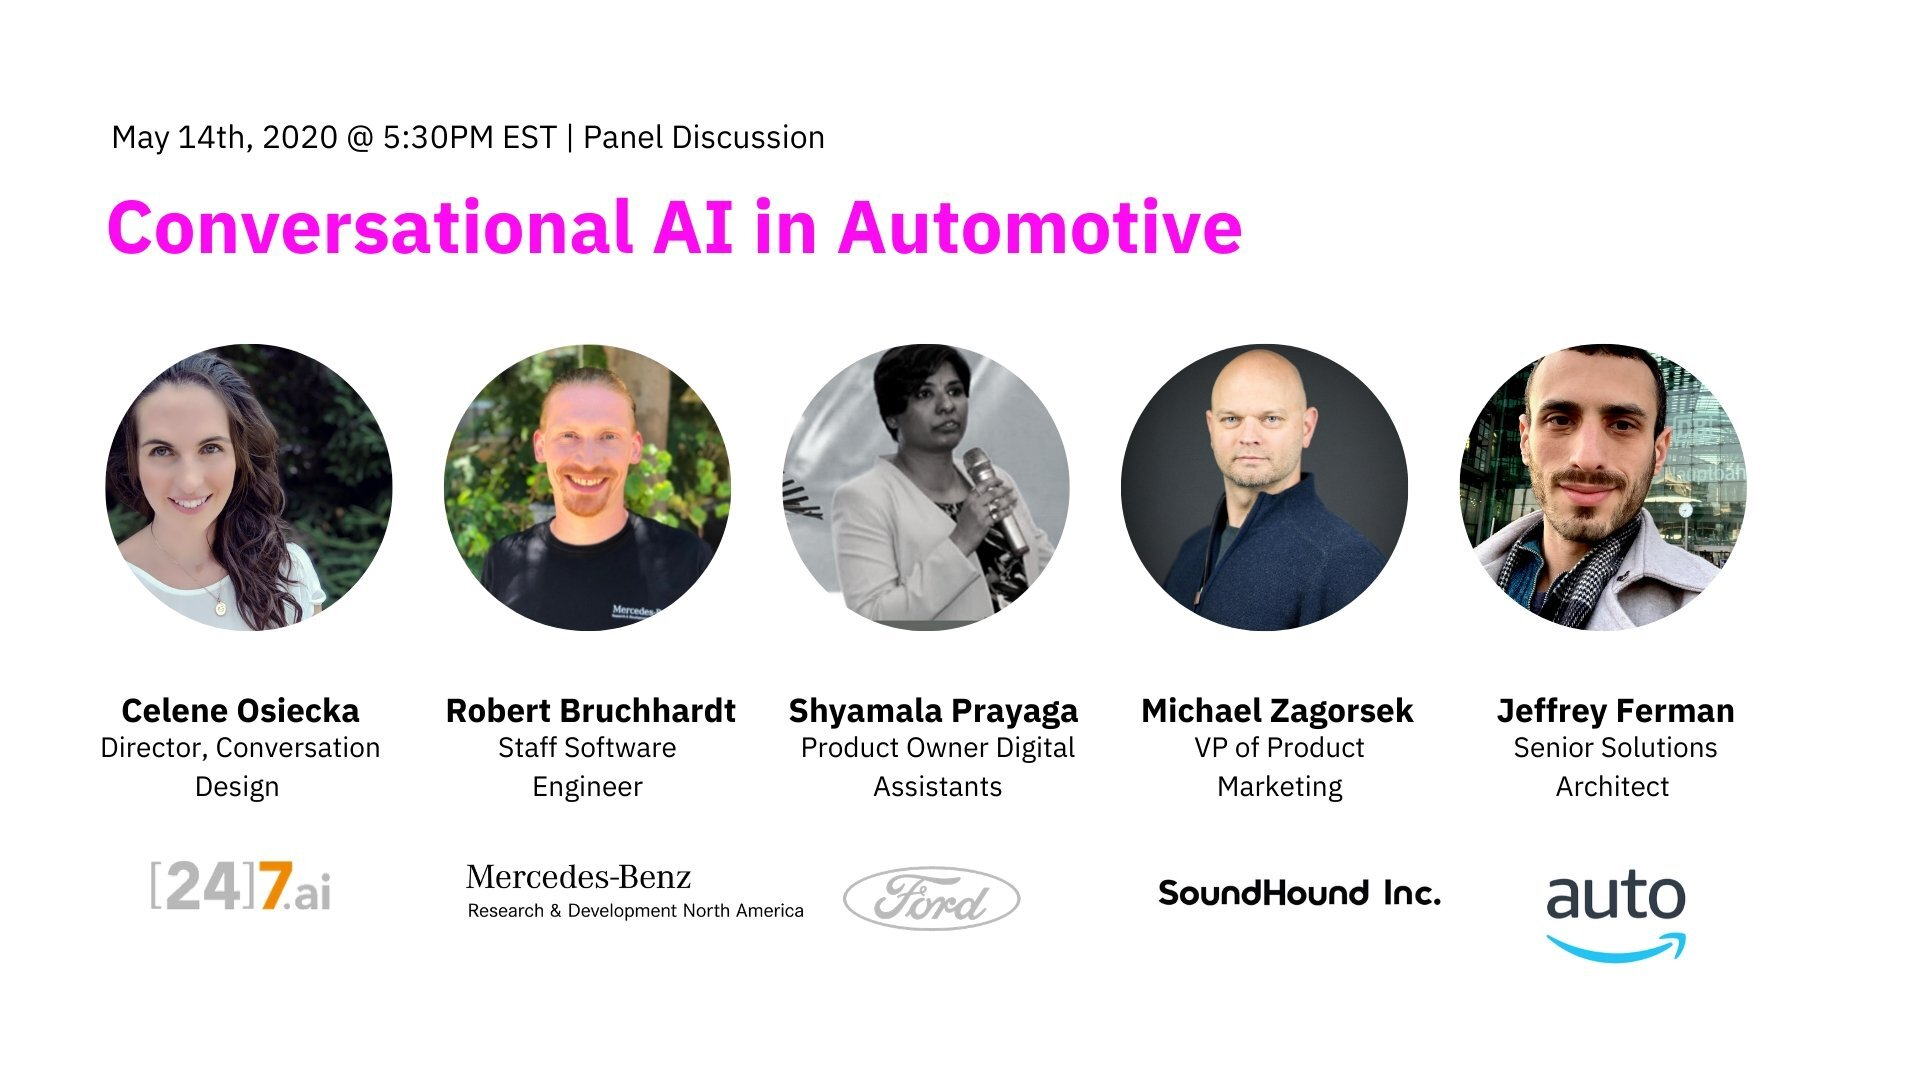 Conversational AI In Automotive Panelists And Event Information